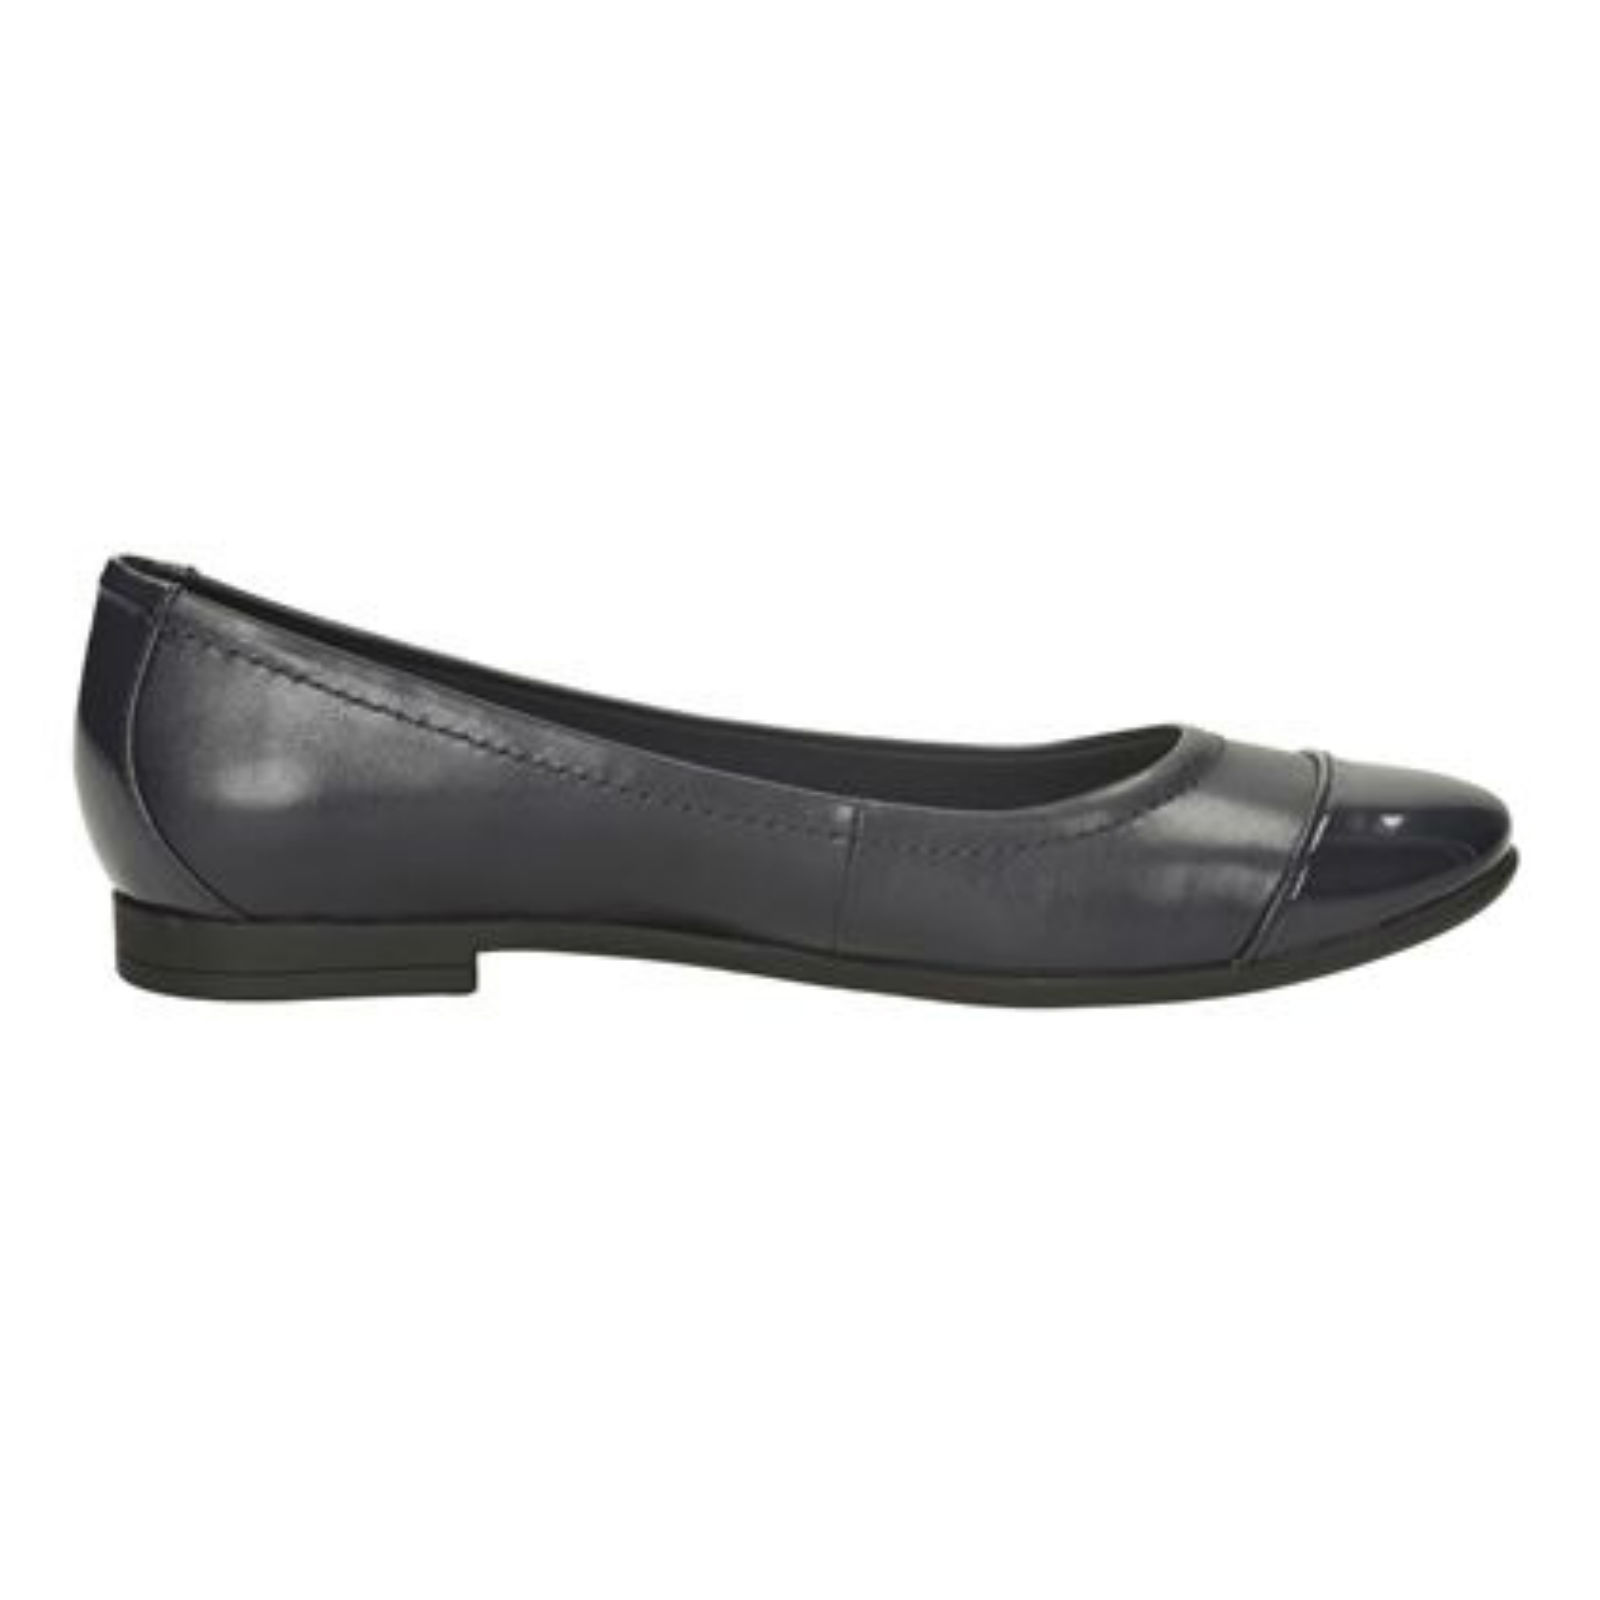 Girls Blue Ballet Flats ($ - $): 30 of items - Shop Girls Blue Ballet Flats from ALL your favorite stores & find HUGE SAVINGS up to 80% off Girls Blue Ballet Flats, including GREAT DEALS like Womens Flats Round Toe Jersey Soft and Comfortable Basic Canvas Slip On Ballet Flats Shoes With Bow Knot Basic Canvas Slip On Ballet Shoes Dress Shoes ($).